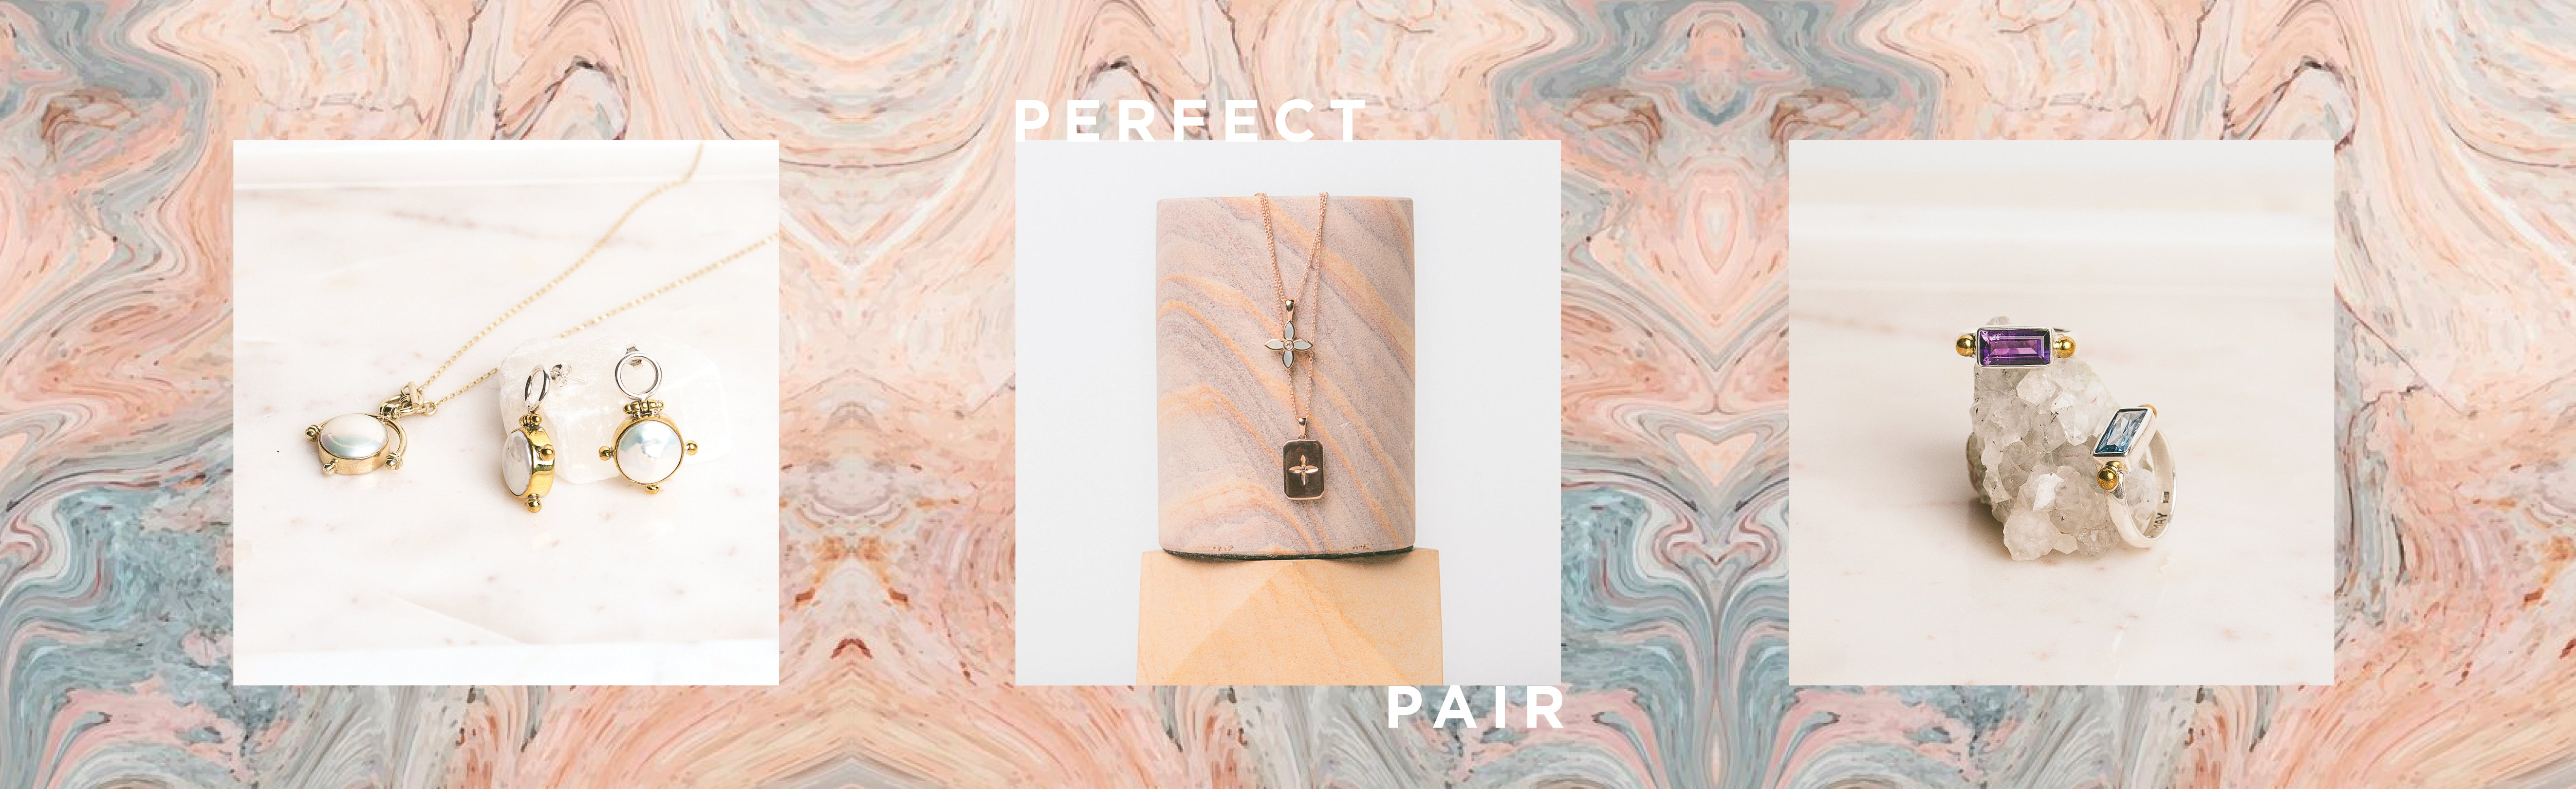 Perfect-Pair-Collection-Banner